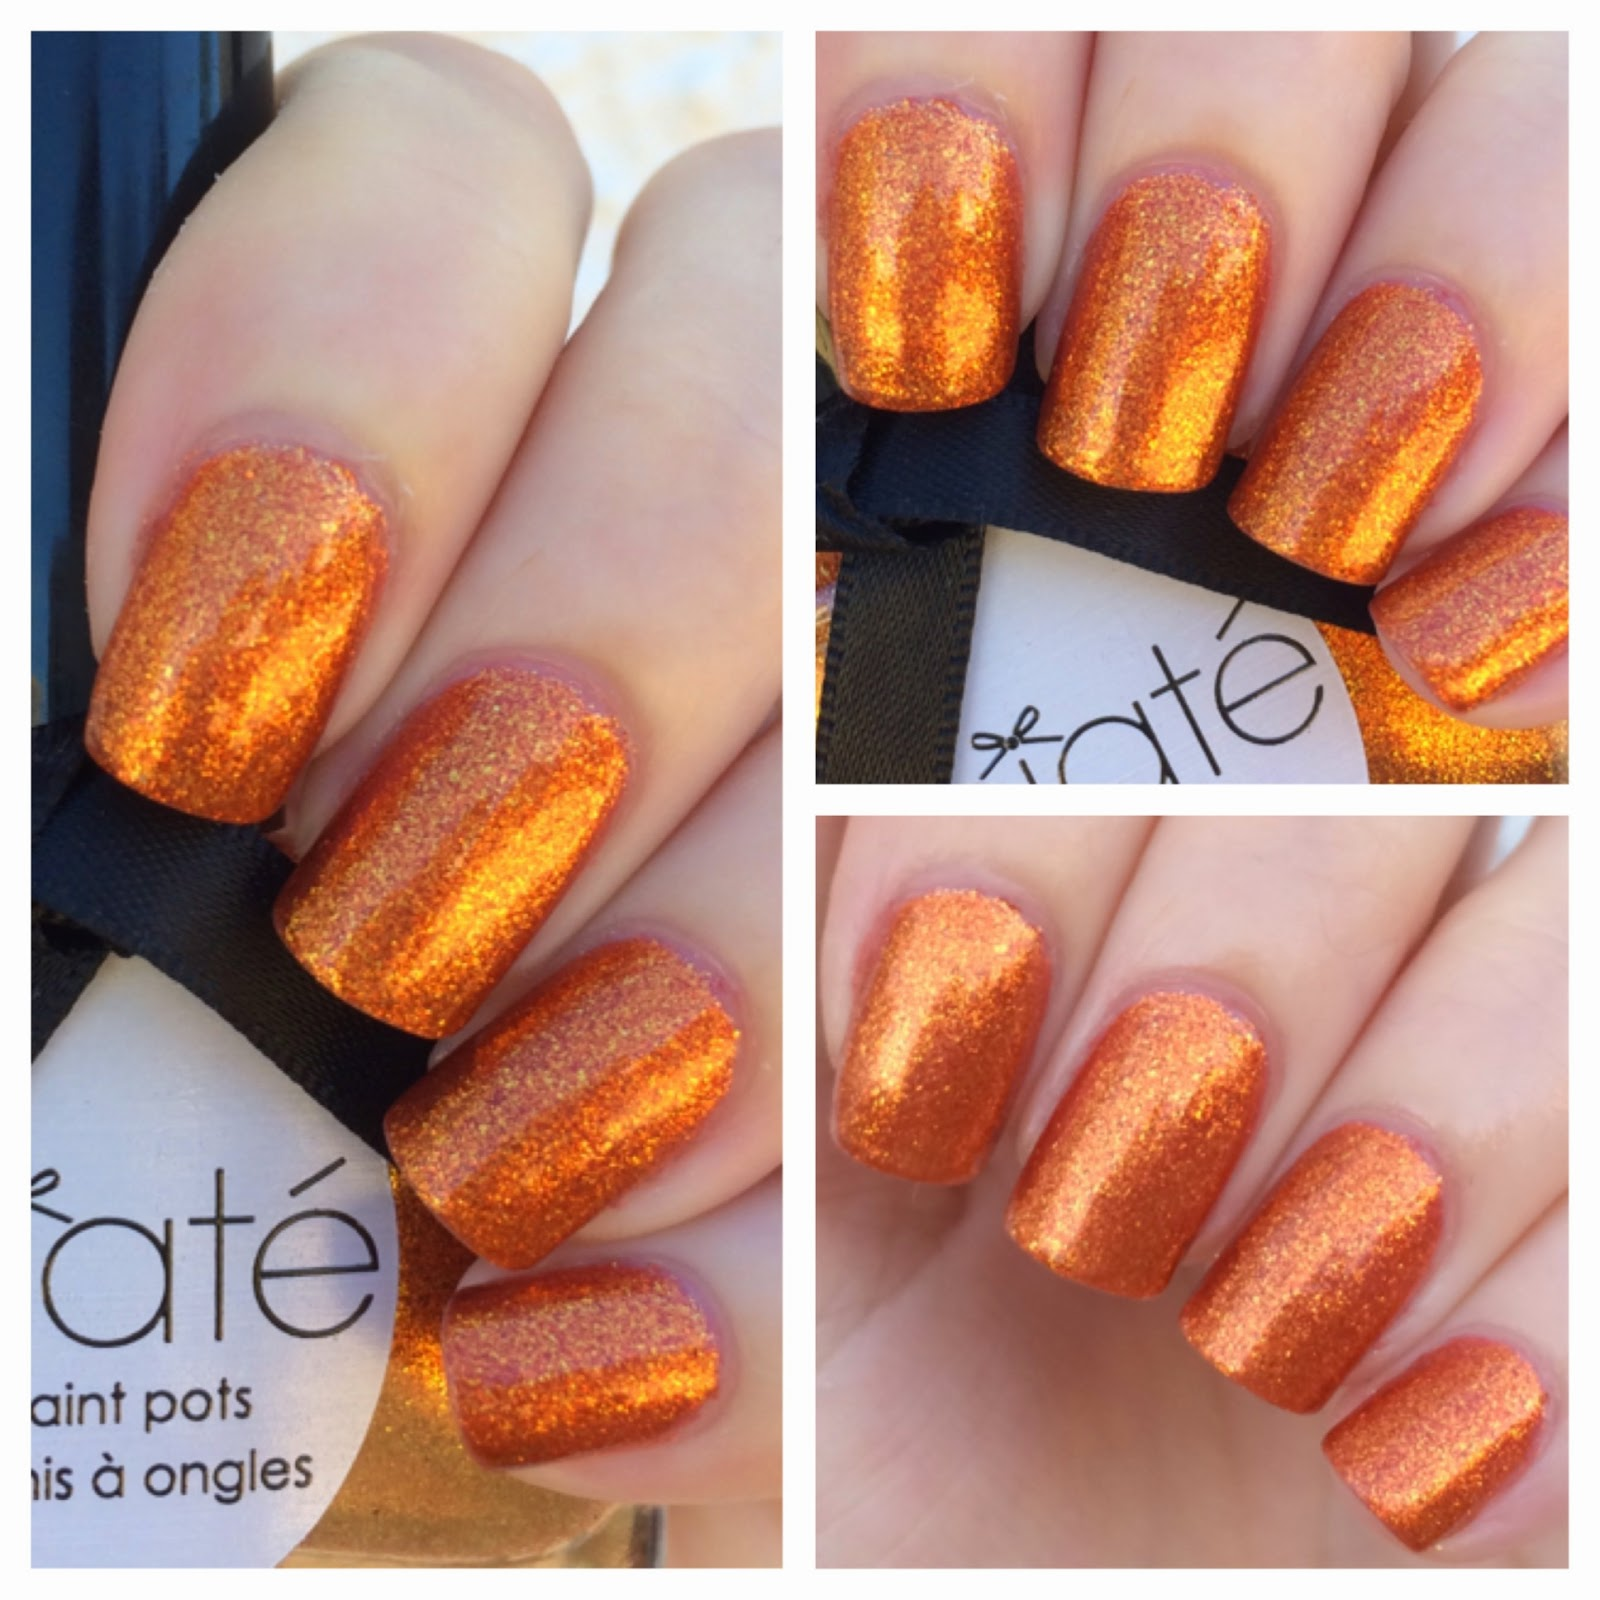 Ciate Bottled Sunshine Nail Polish Collection